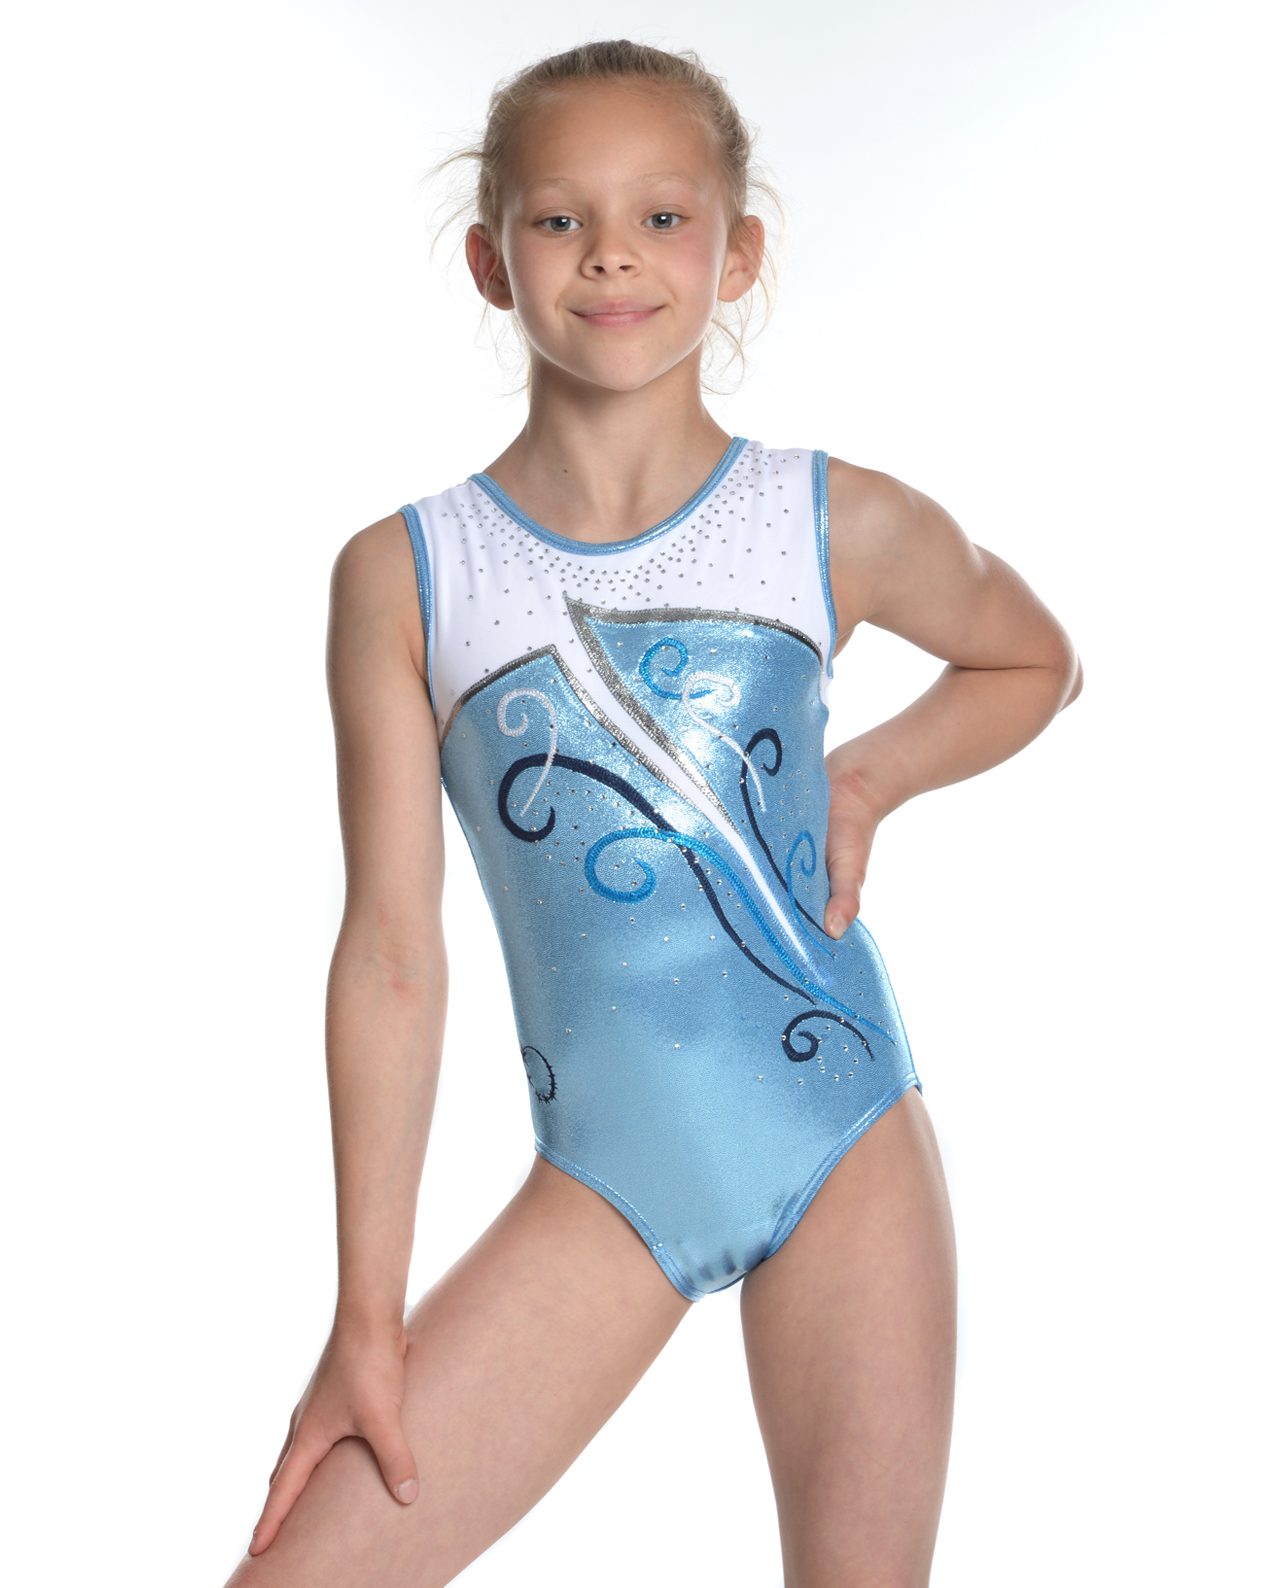 At New York Dancewear, we search for the best quality dancewear, ballet slippers, pointe shoes, jazz shoes and tap shoes. We carry the best name brand products. Capezio dance shoes and Capezio dancewear, leotards, tights and accessories are a major part of our offerings. We have Bloch dance shoes and Bloch dancewear.